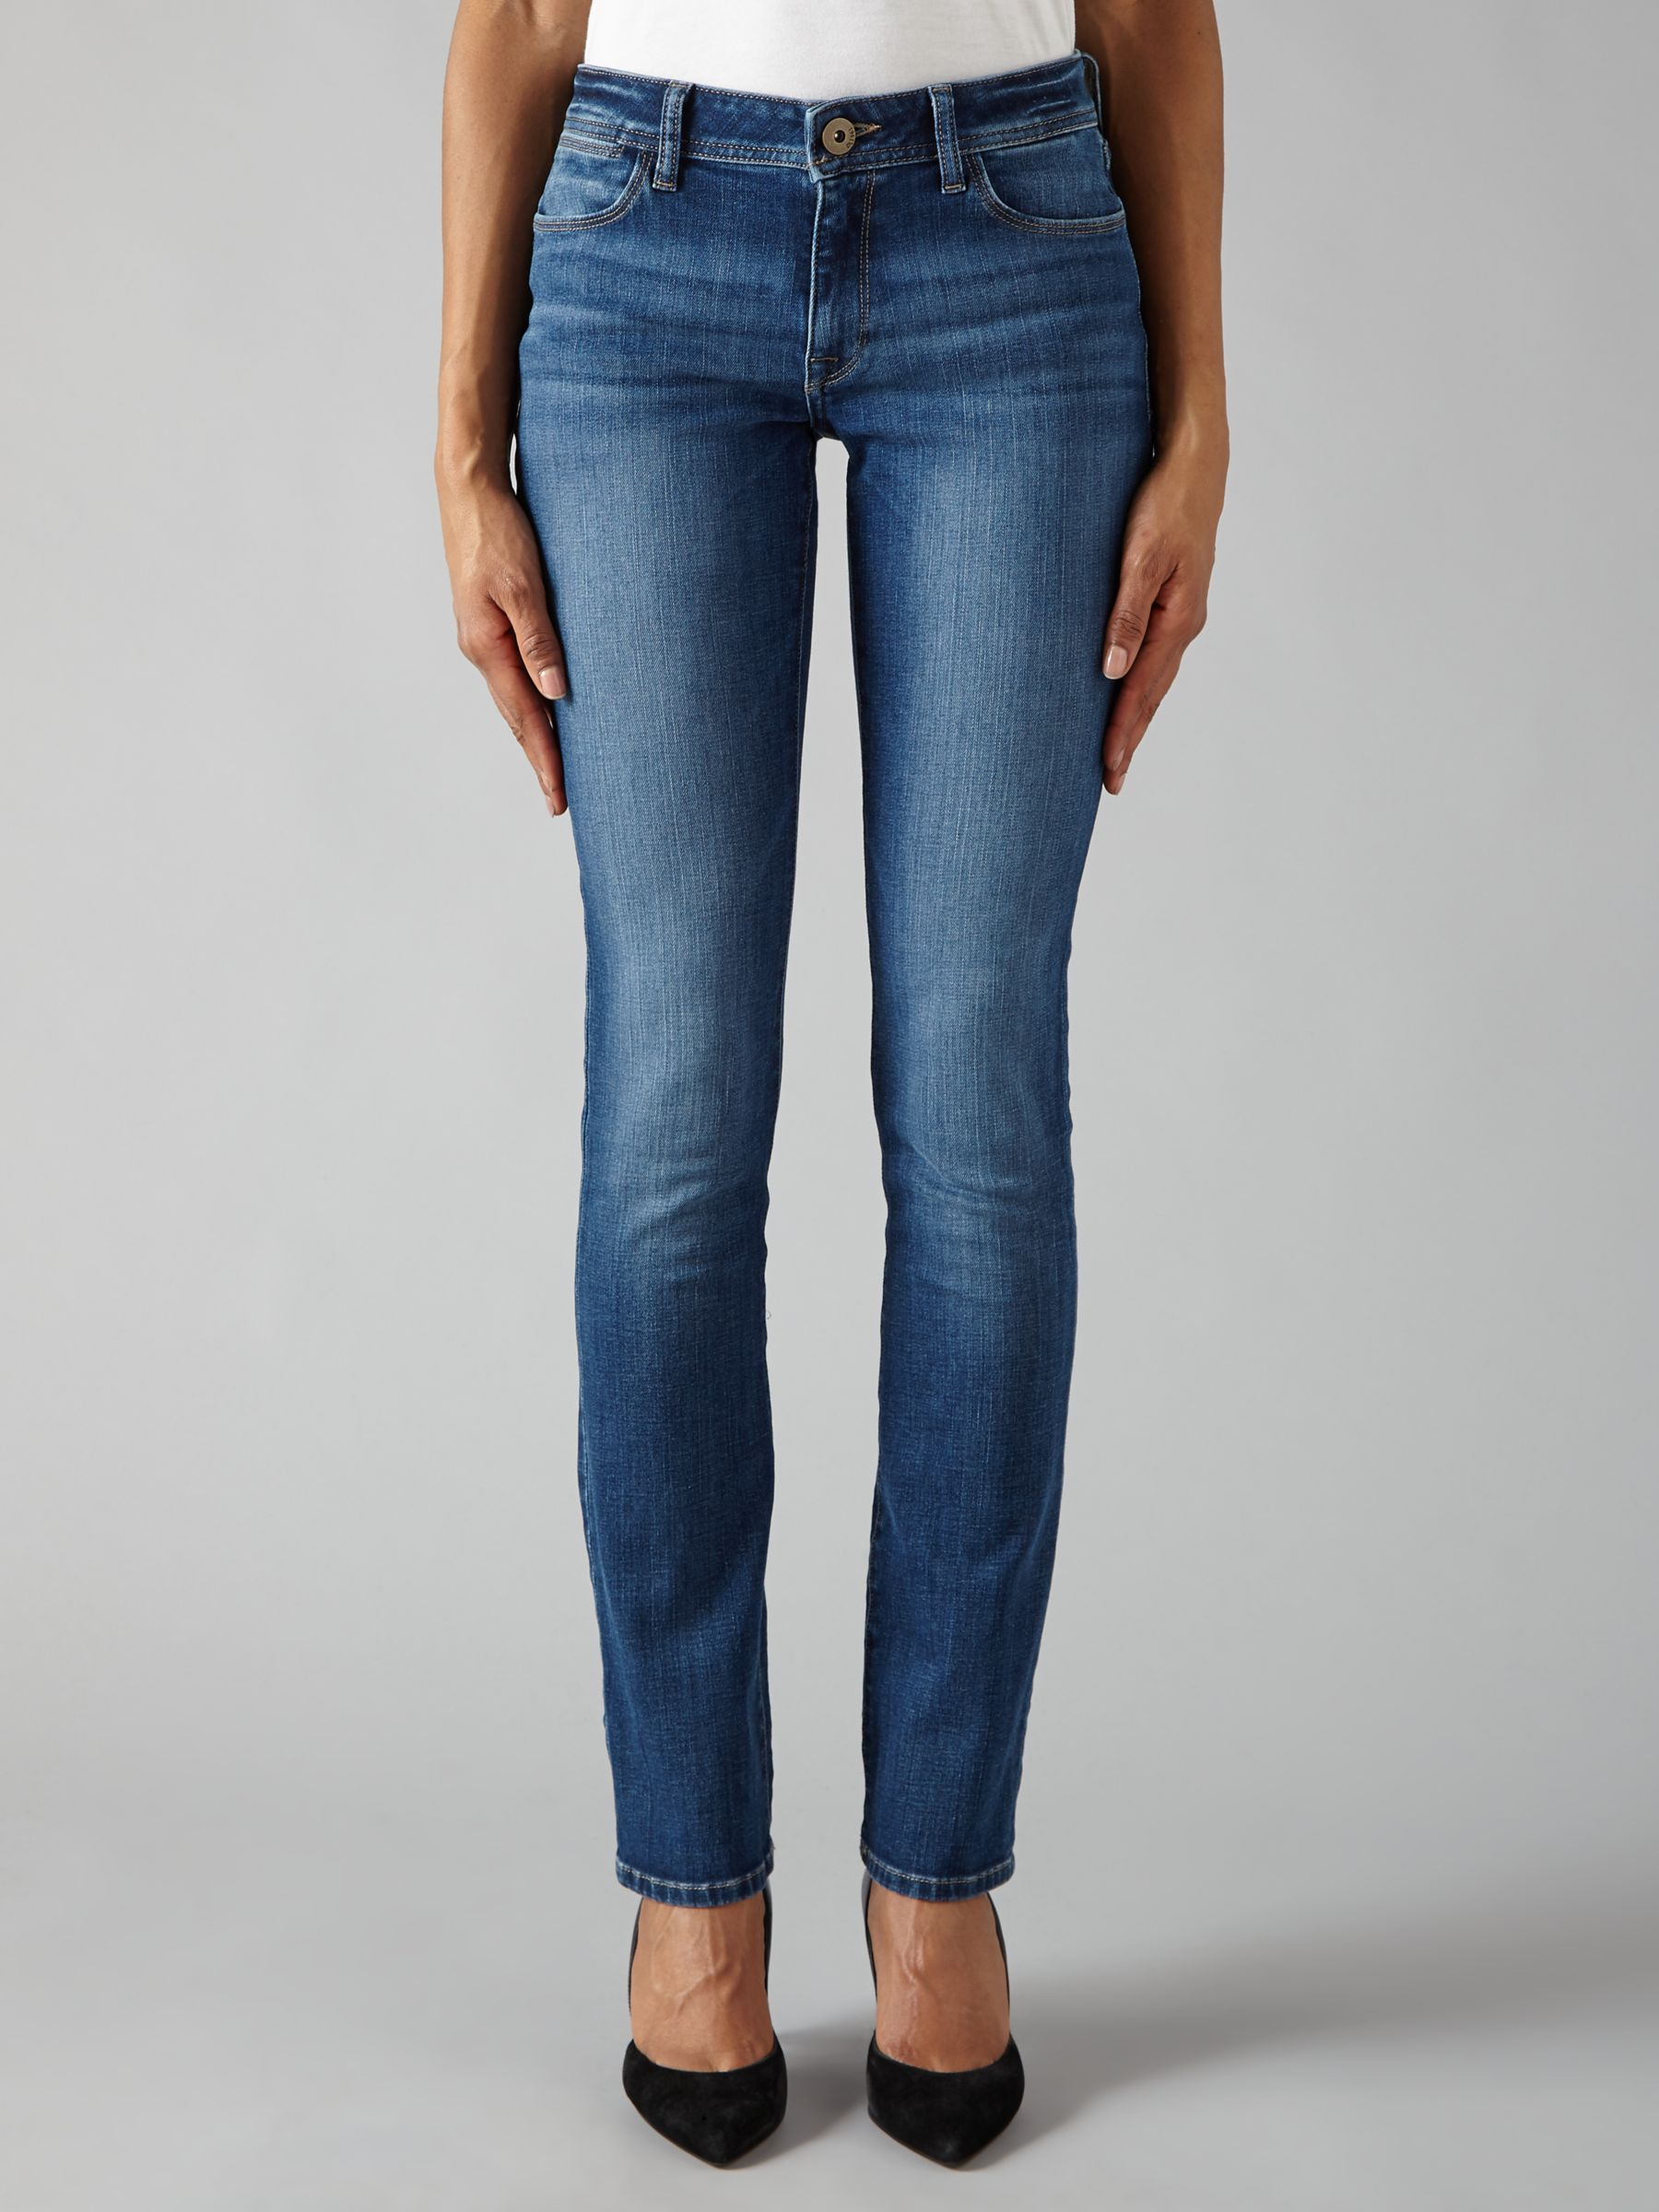 DL1961 DL1961 Coco Curvy Straight Jeans, Pacific